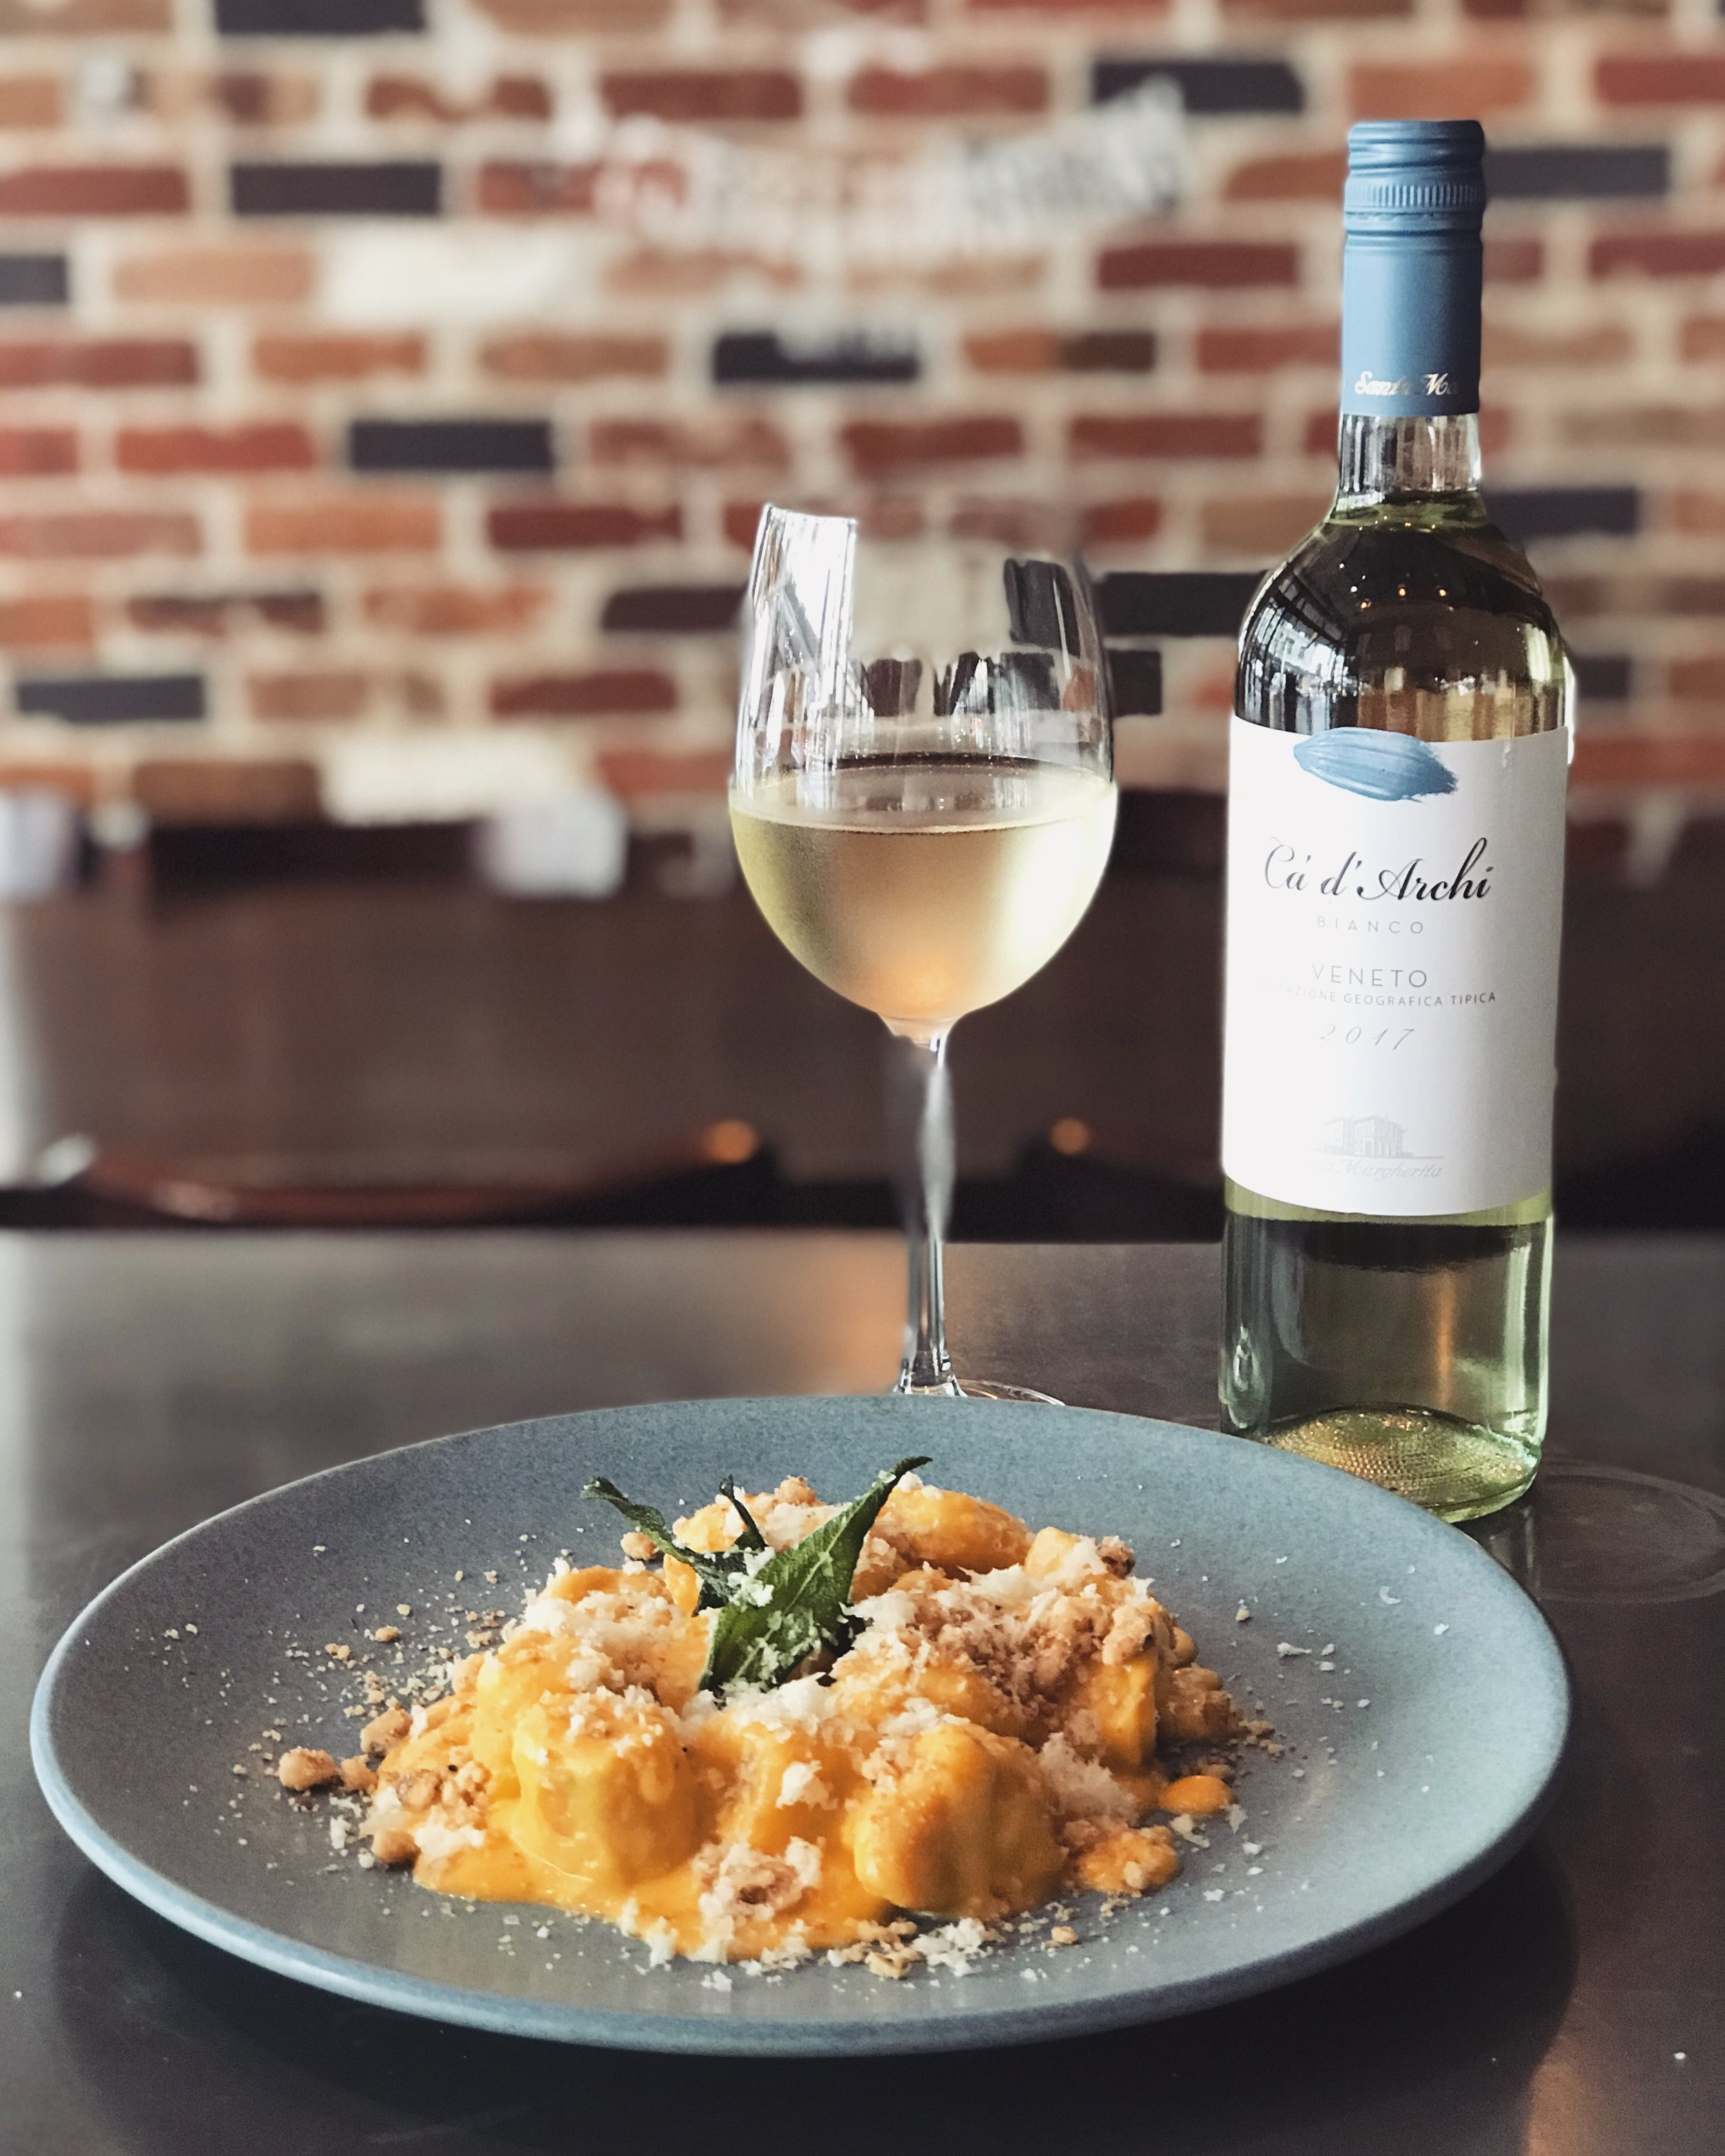 27 Feb - 5 Mar - Wood roasted butternut pumpkin gnocchi, with pumpkin purée, toasted walnuts, blistered sage and truffle pecorino.Perfectly matched with a new addition to our wine cellar: Ca' d'Archi, a blend of Pinot Bianco and Pinot Grigio straight from its land of origin - Veneto (Italy). A delicate flavour which exalts and brings out the delicate flavour of the pumpkin and sage, but doesn't overpower it.